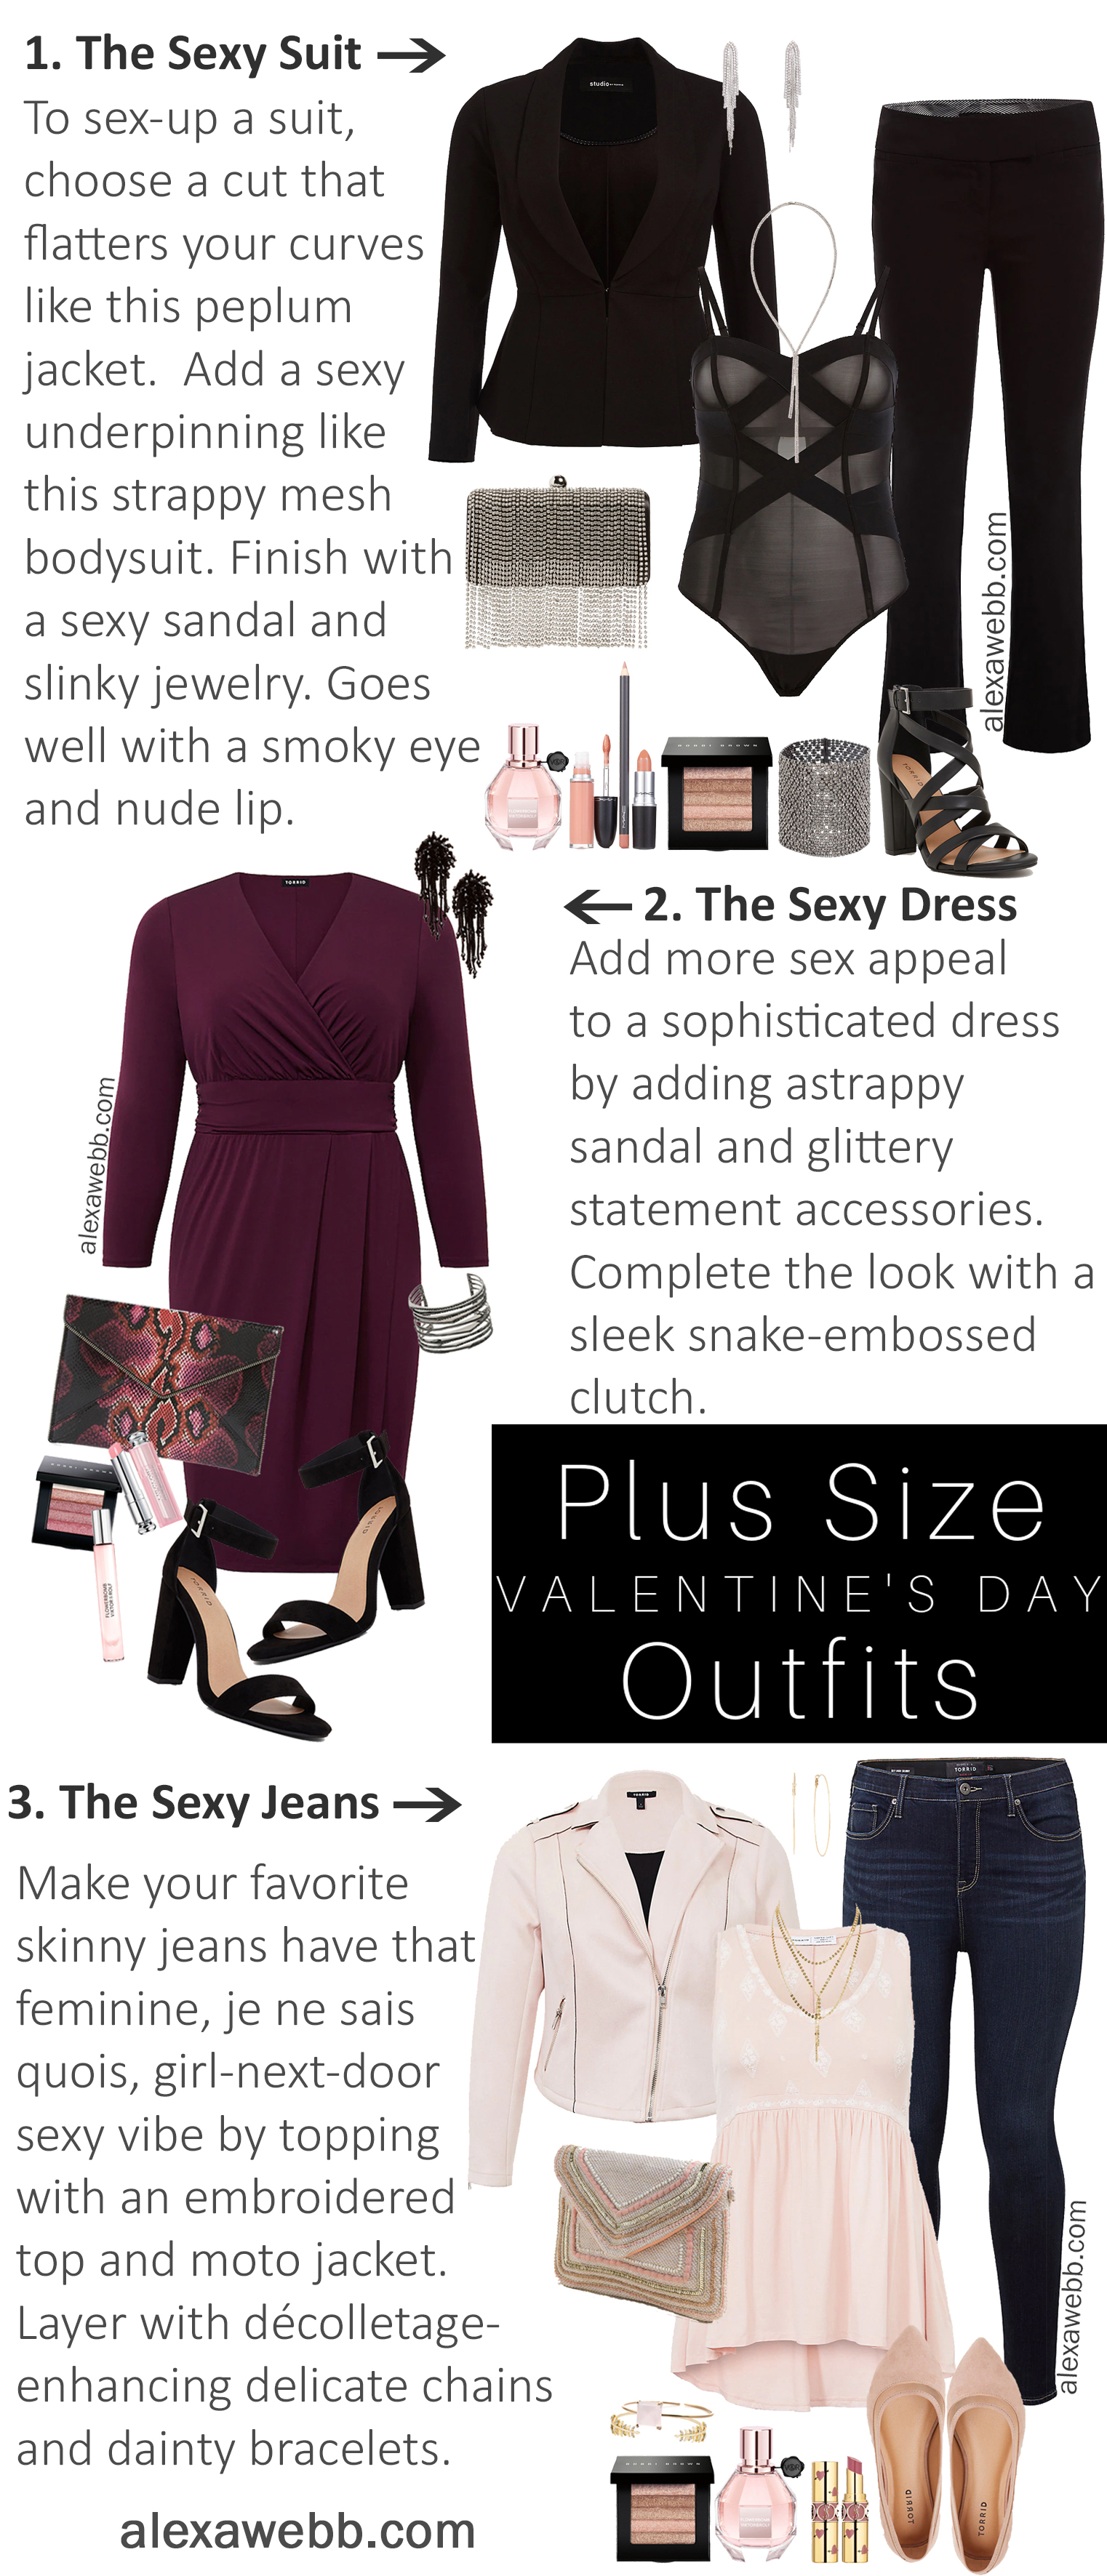 4ad0cd9ed7e3 plus-size-valentines-day-date-night-outfit-alexa-webb-119-5. Published on  January 22, 2019 in Plus Size Valentine's Date Night Outfit ...